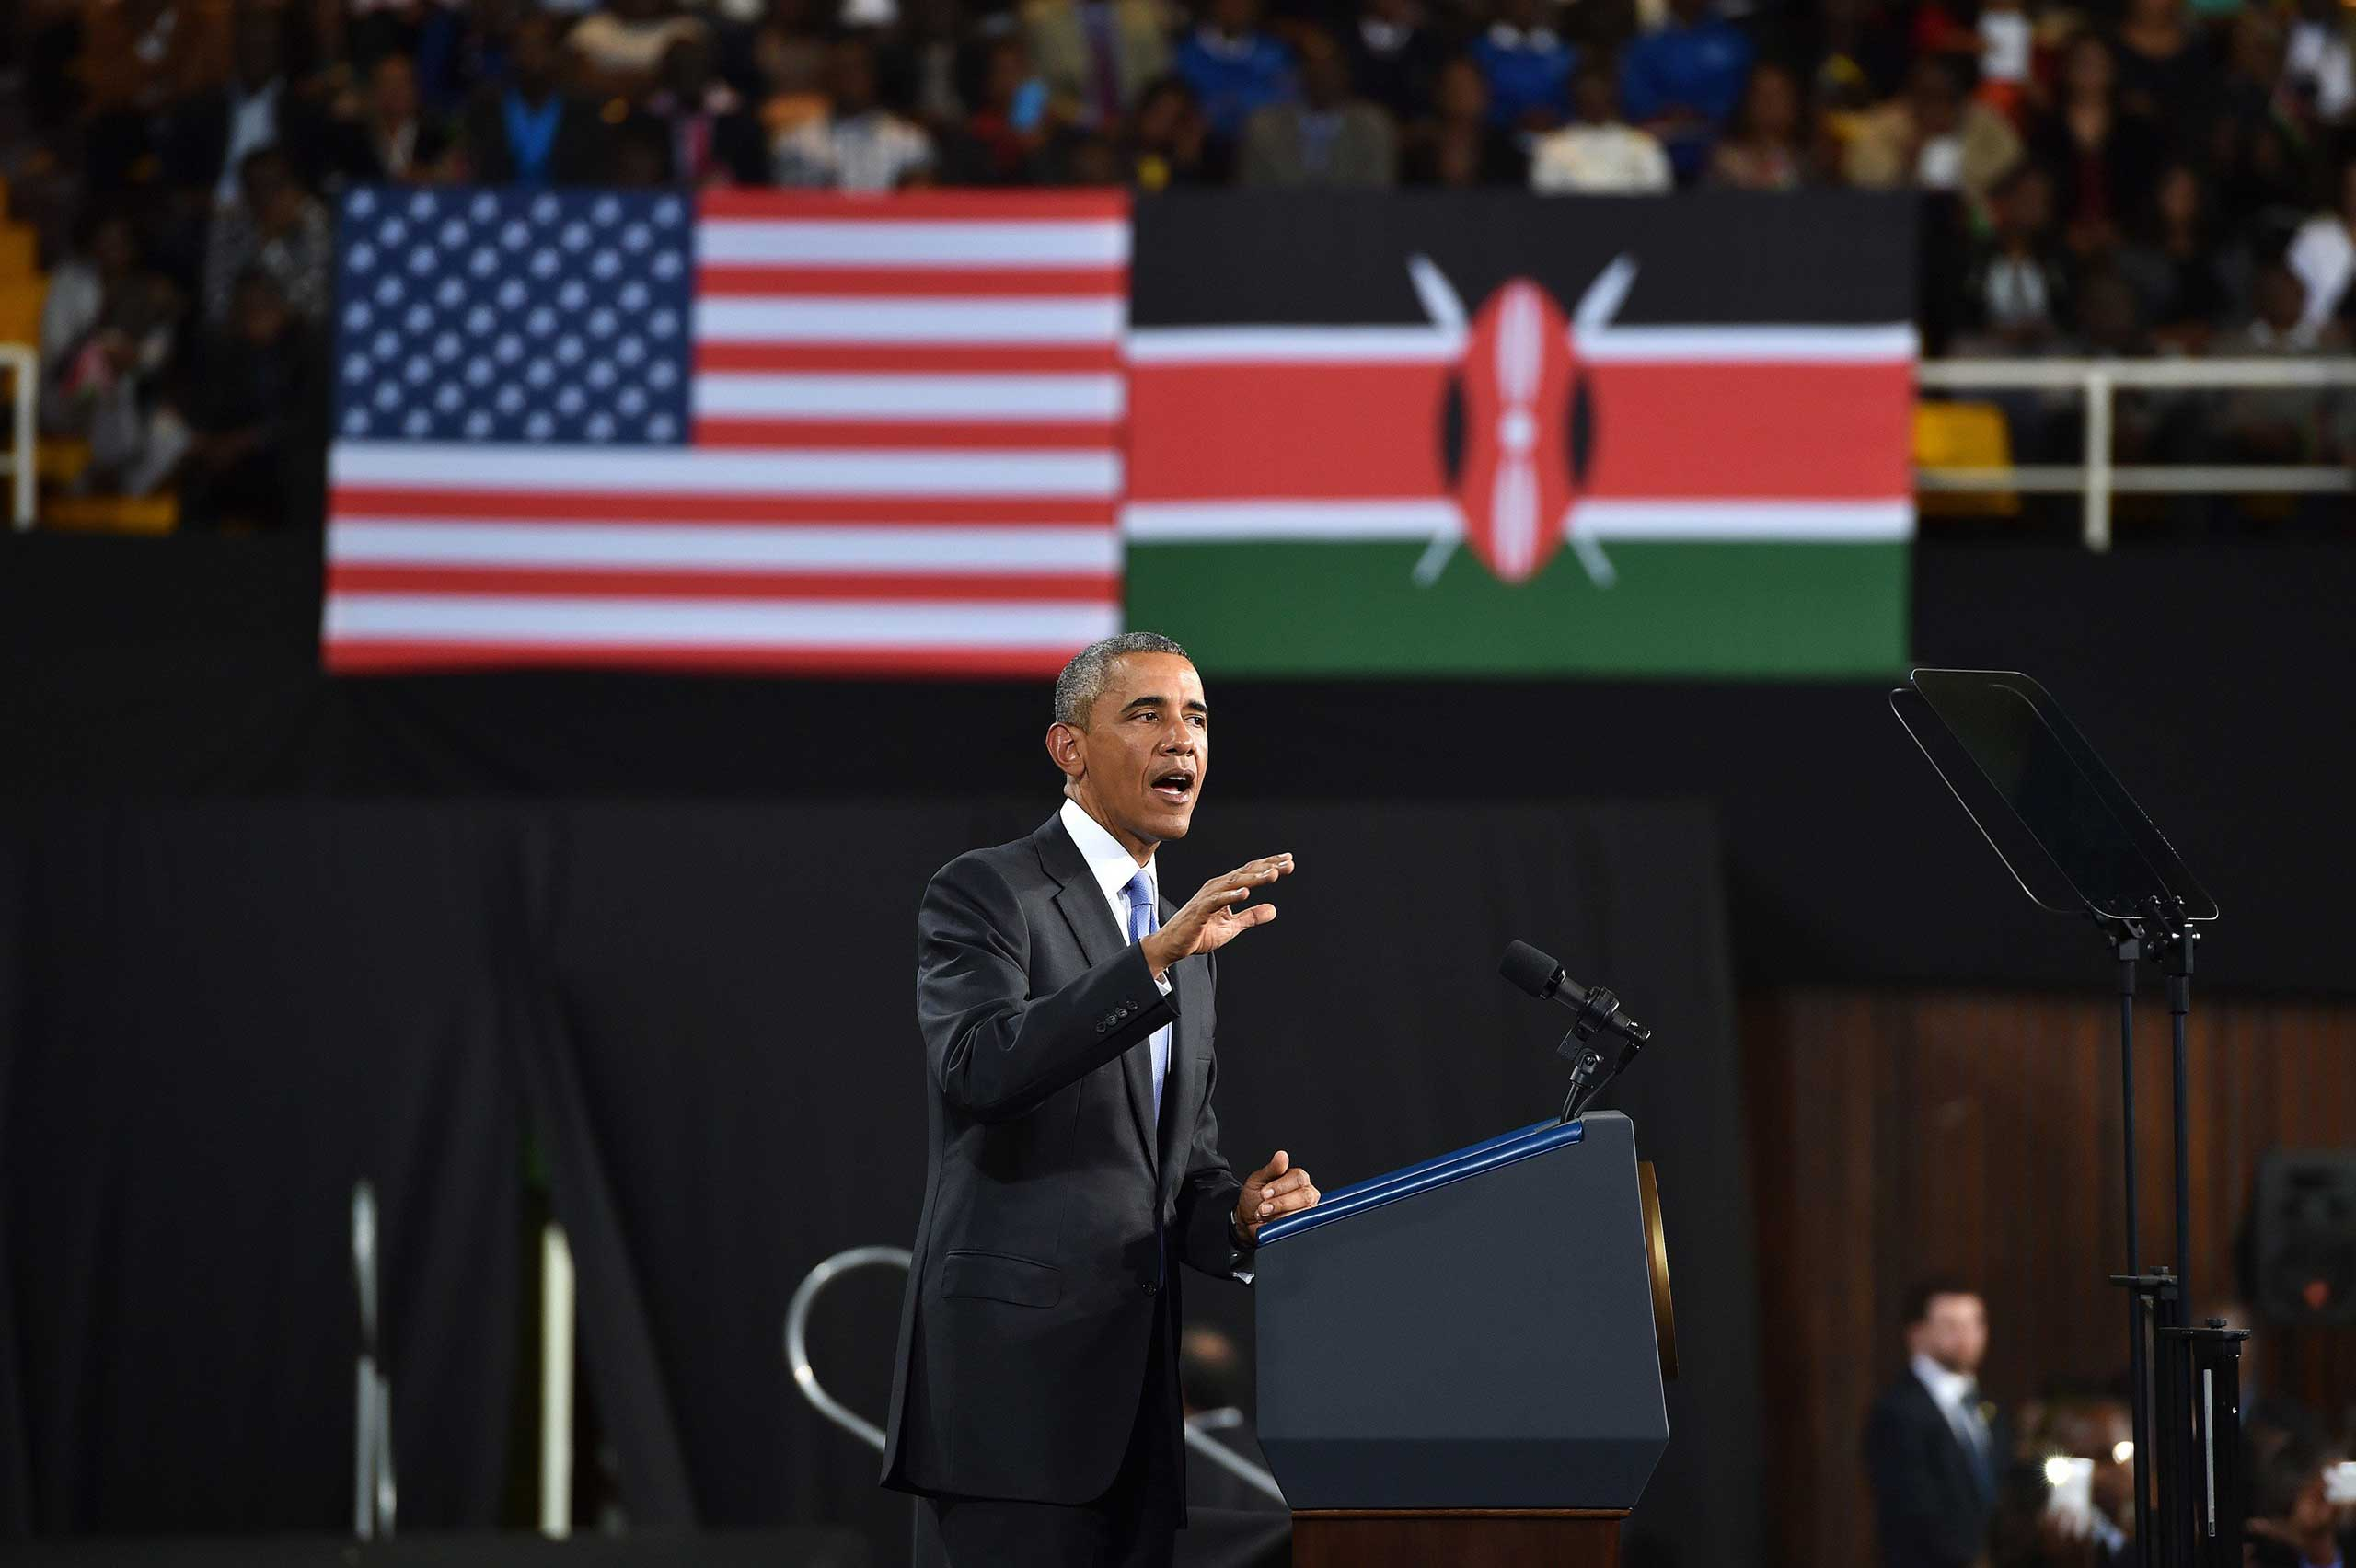 President Barack Obama delivers a speech during at Safaricom Indoor Arena in Nairobi on July 26, 2015.